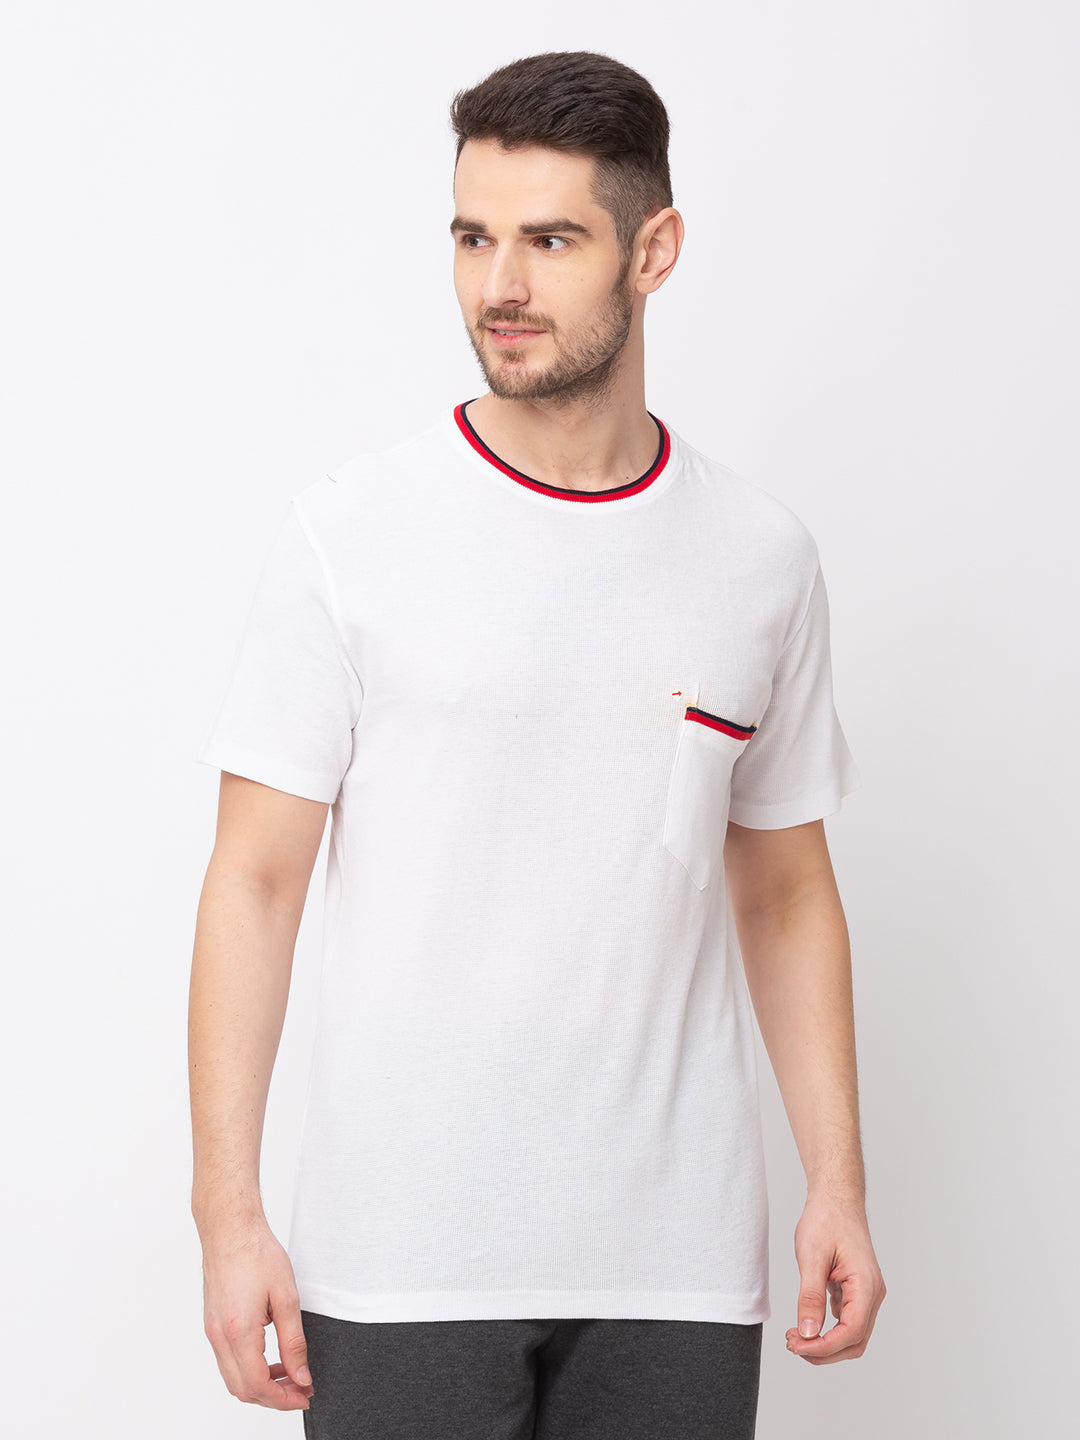 Globus White Solid T-Shirt-1